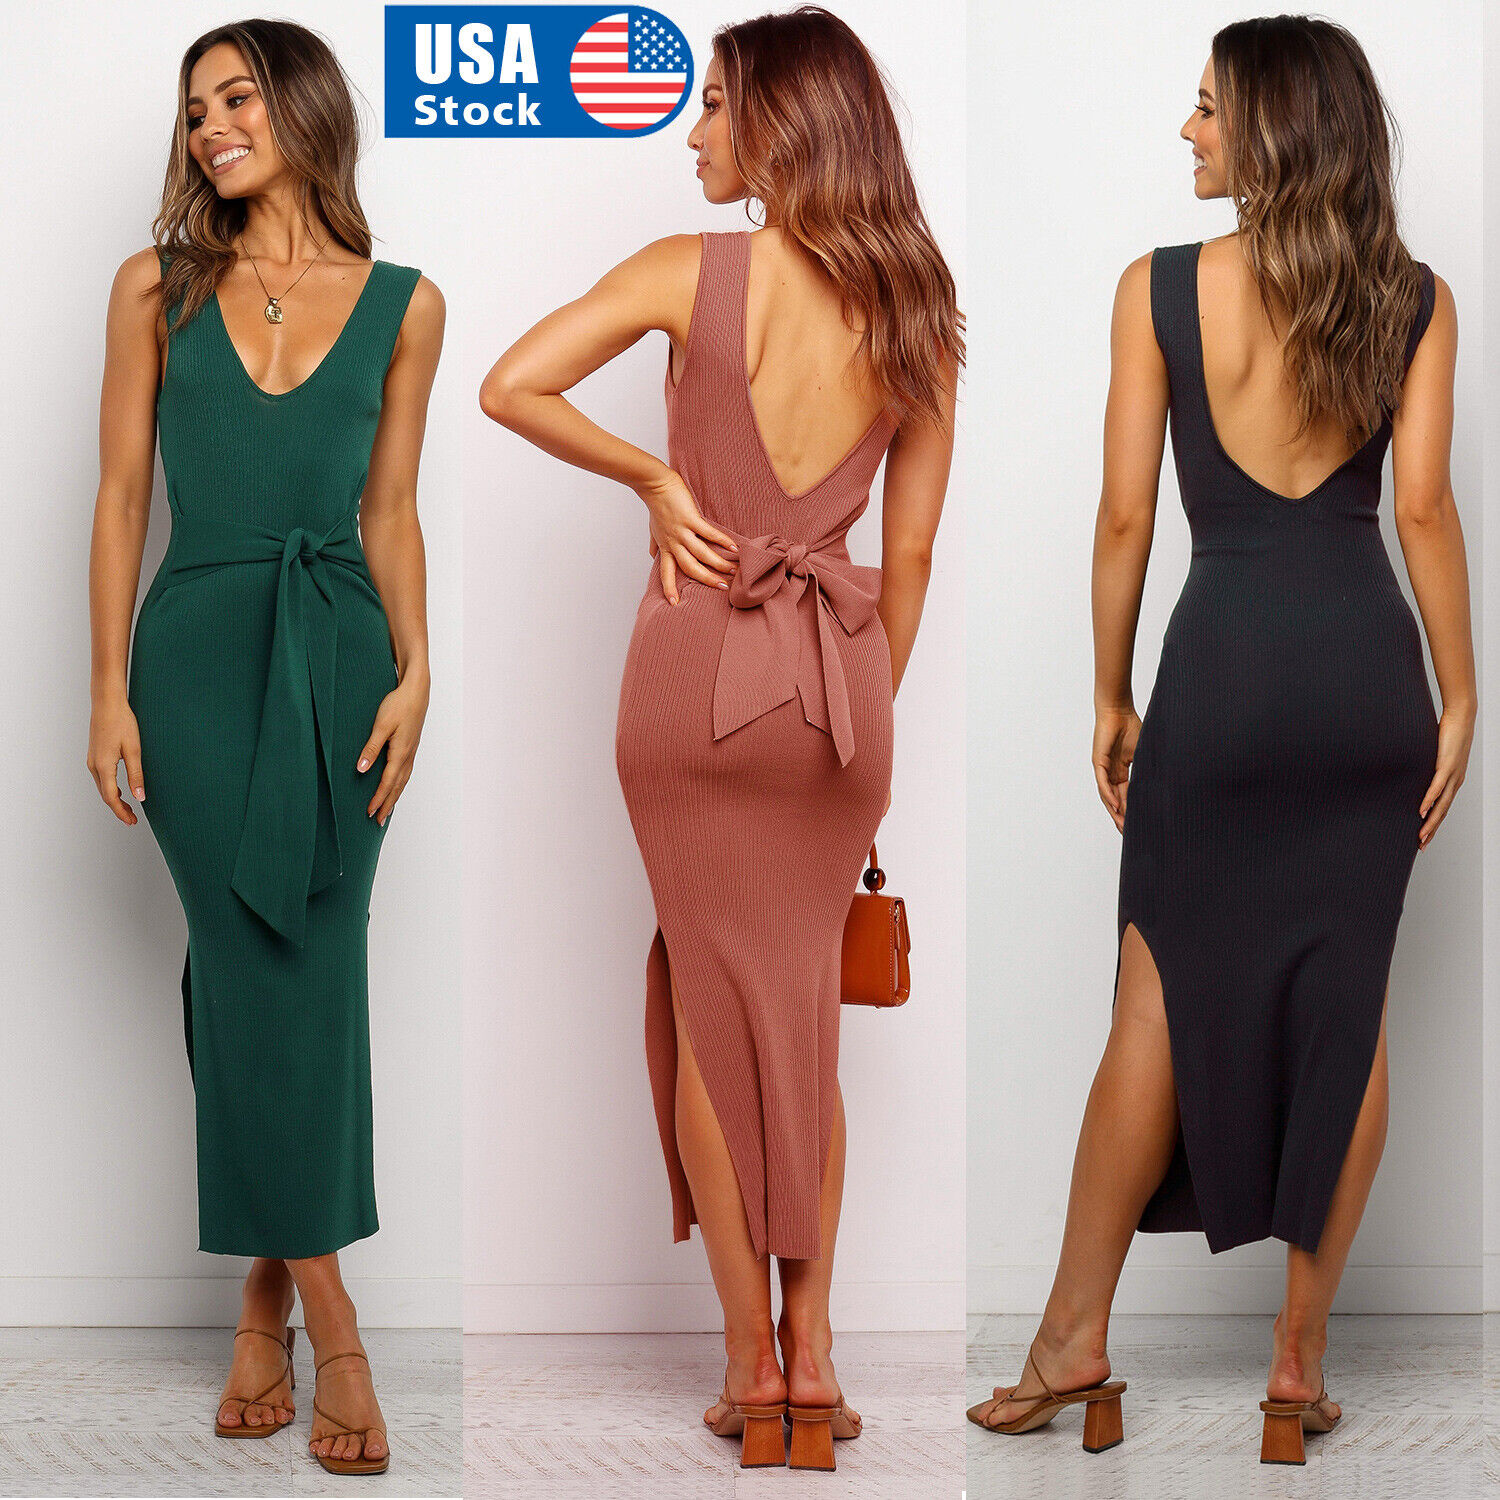 Women Stretch Dress Bodycon Party Sleeveless Slim Fit Maxi Sexy Long Sundress US Clothing, Shoes & Accessories